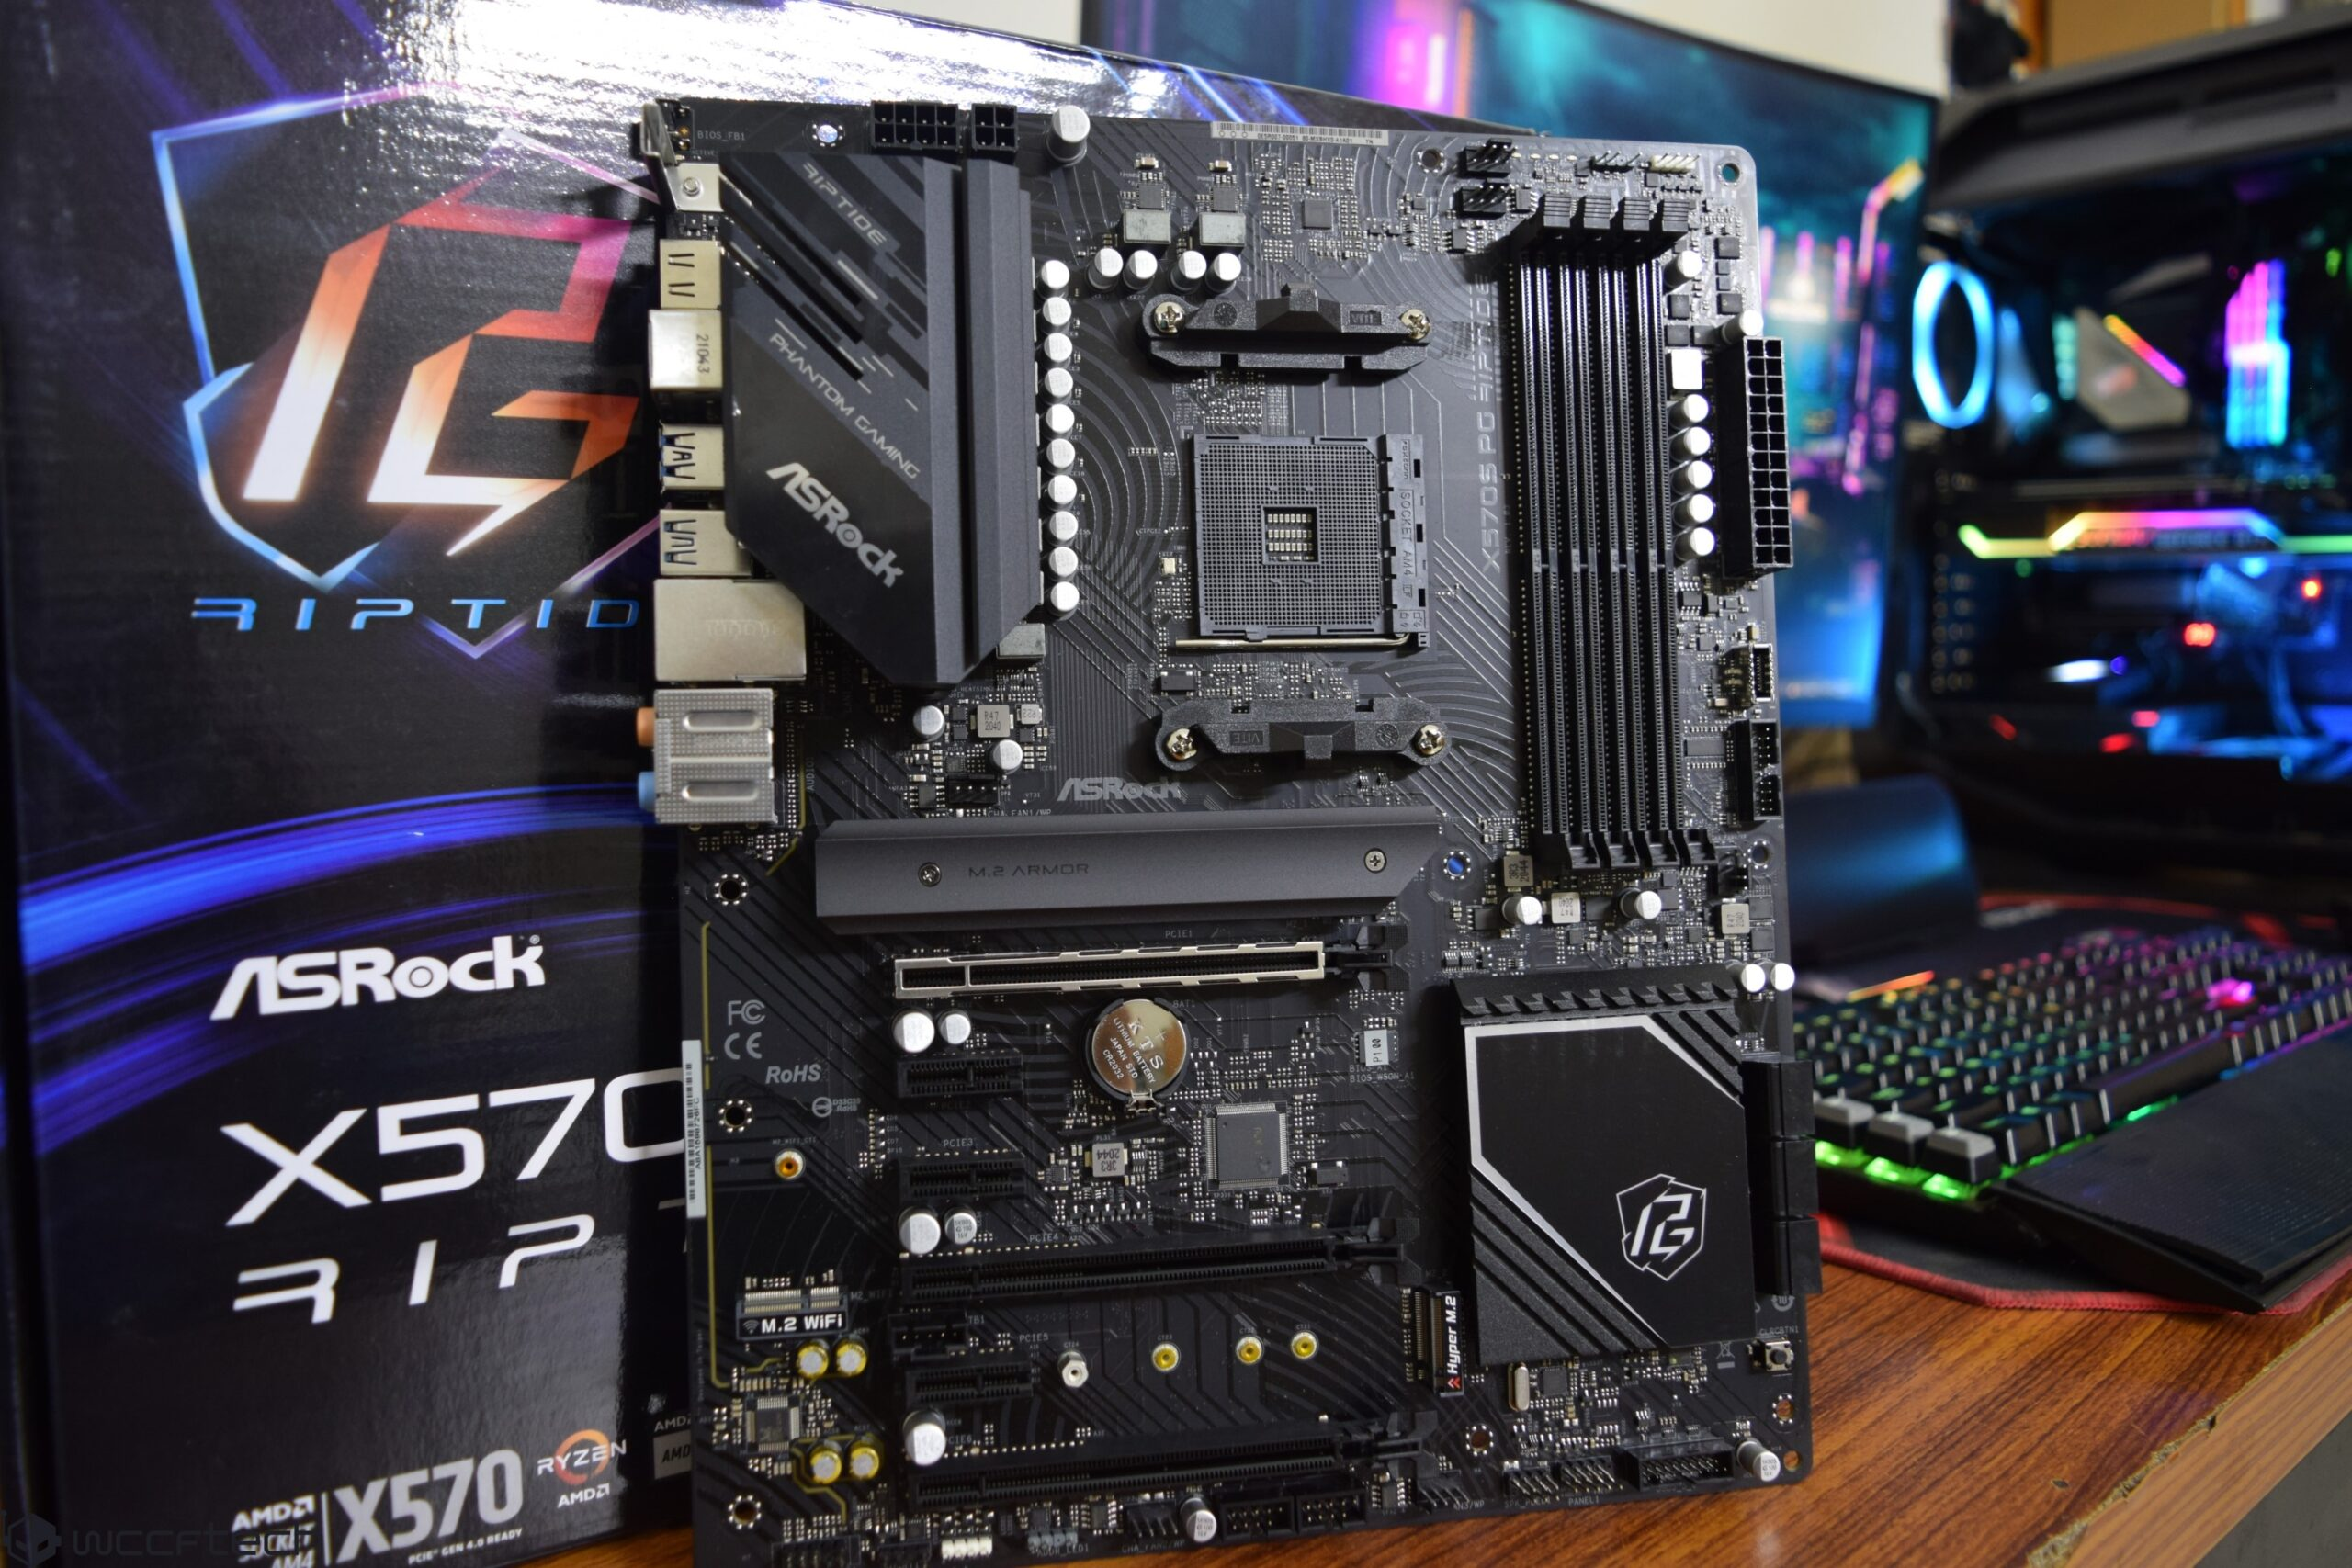 ASRock X570S PG Riptide Motherboard Review With AMD Ryzen 9 5950X